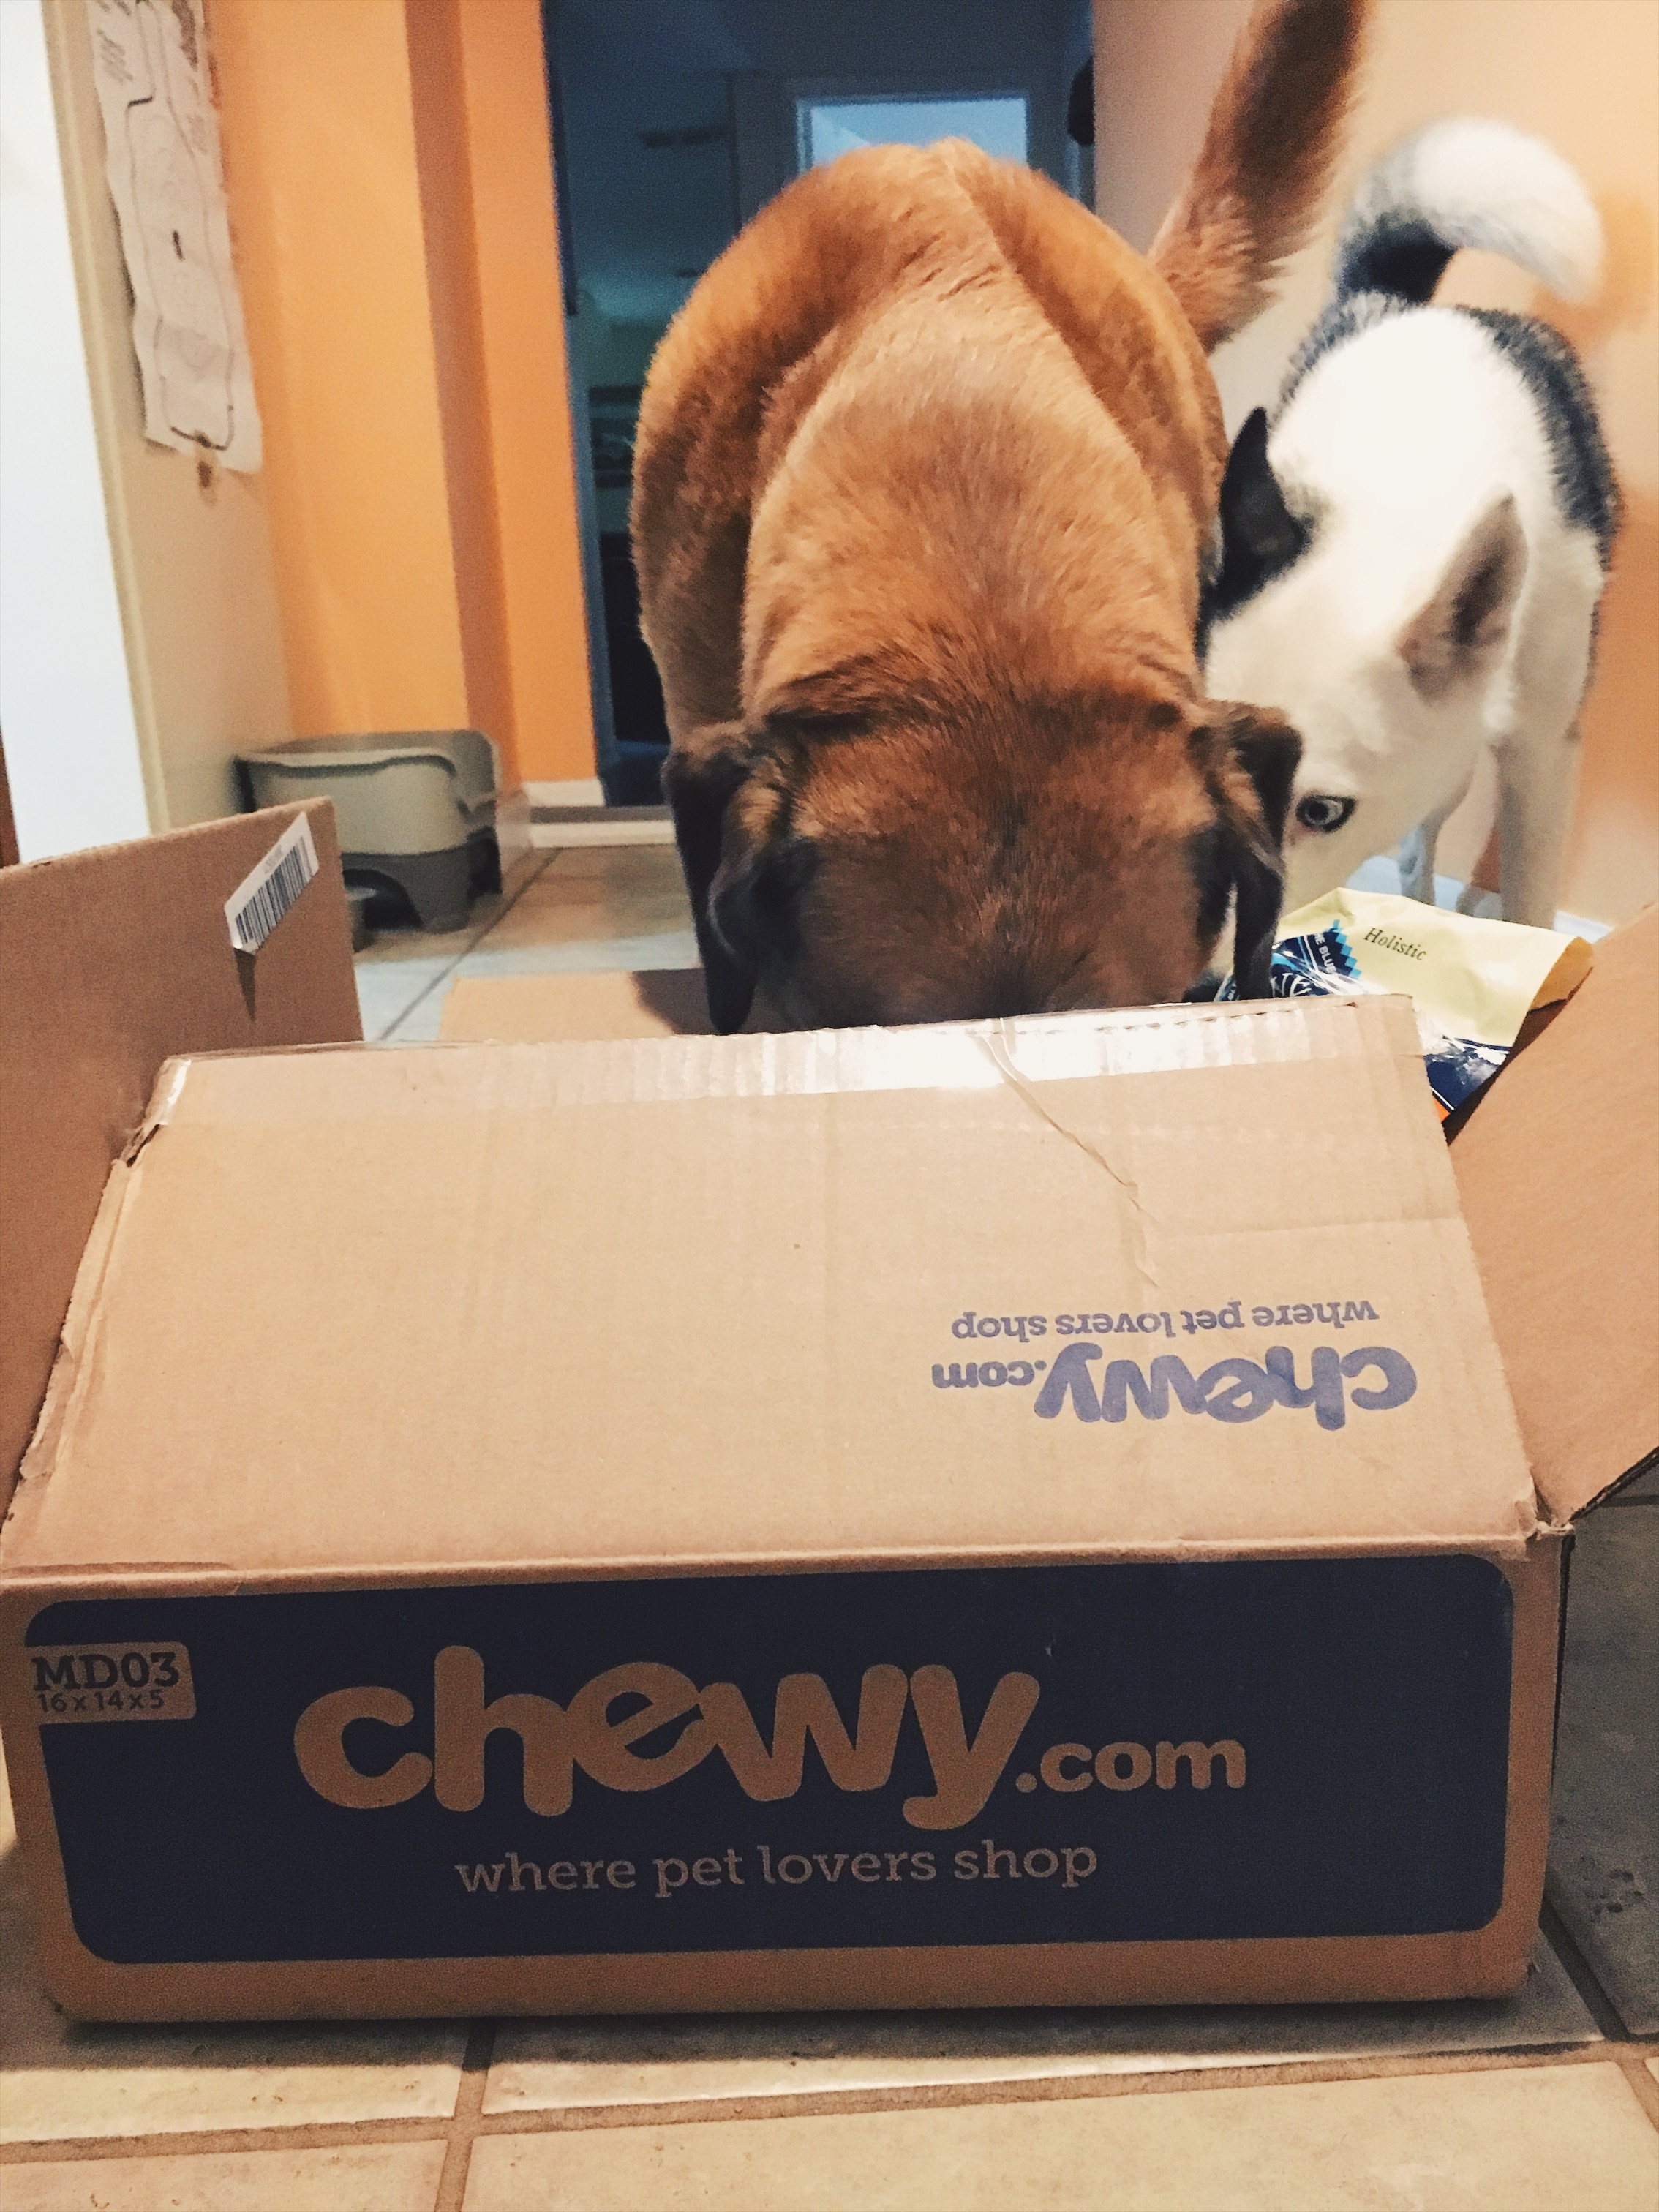 - *I received Taste of the Wild canned dog food free of charge from Chewy.com in an exchange for my honest review.